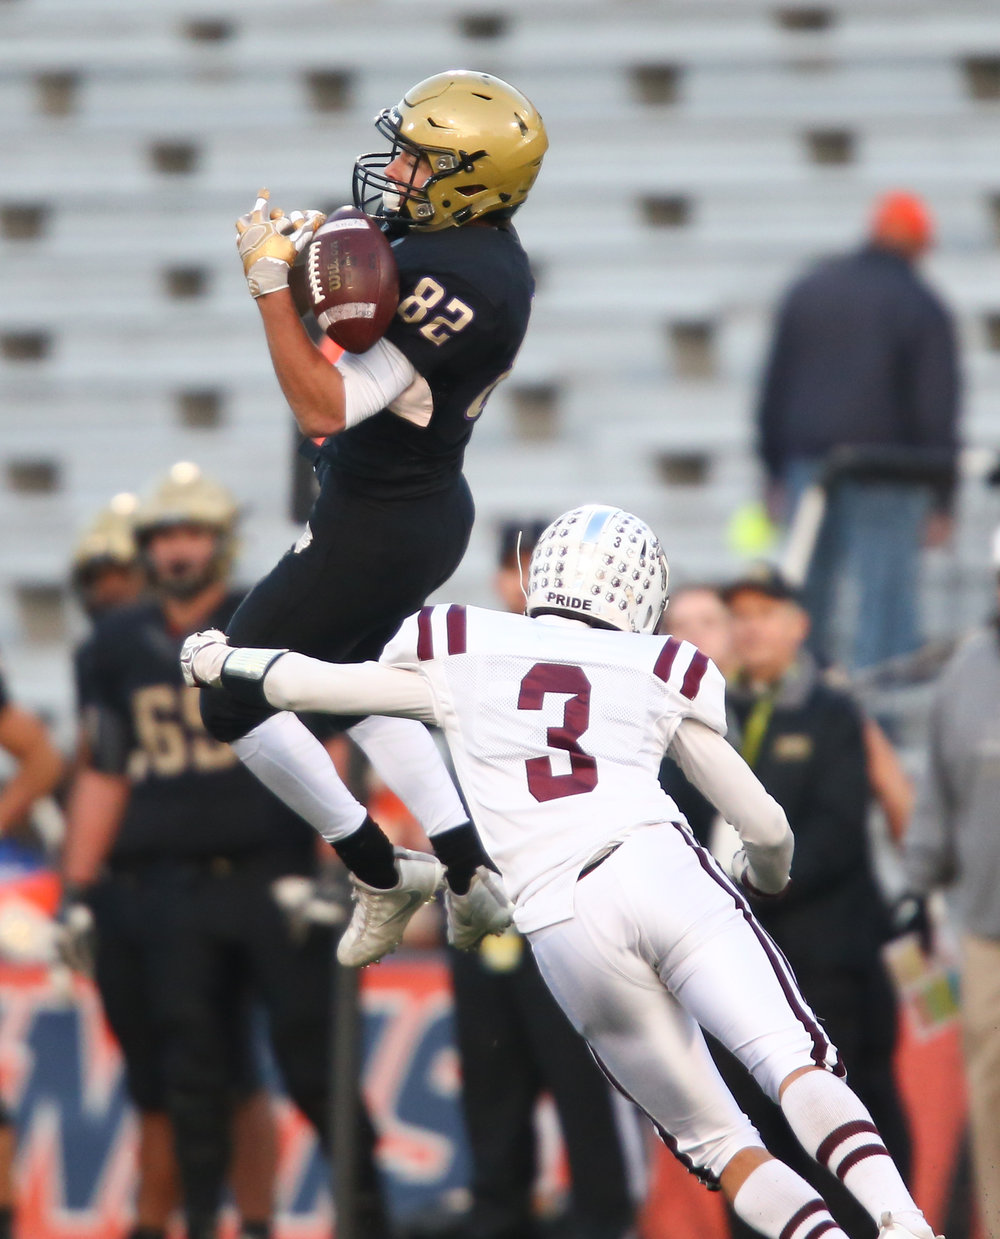 Sacred Heart-Griffin's Michael Healey (82) is unable to hold on to a pass as he is hit by Crystal Lake Prairie Ridge's James Queen (3) while in the air in the second half during the IHSA Class 6A State Championship at Memorial Stadium, Saturday, Nov. 26, 2016, in Champaign, Ill. Justin L. Fowler/The State Journal-Register